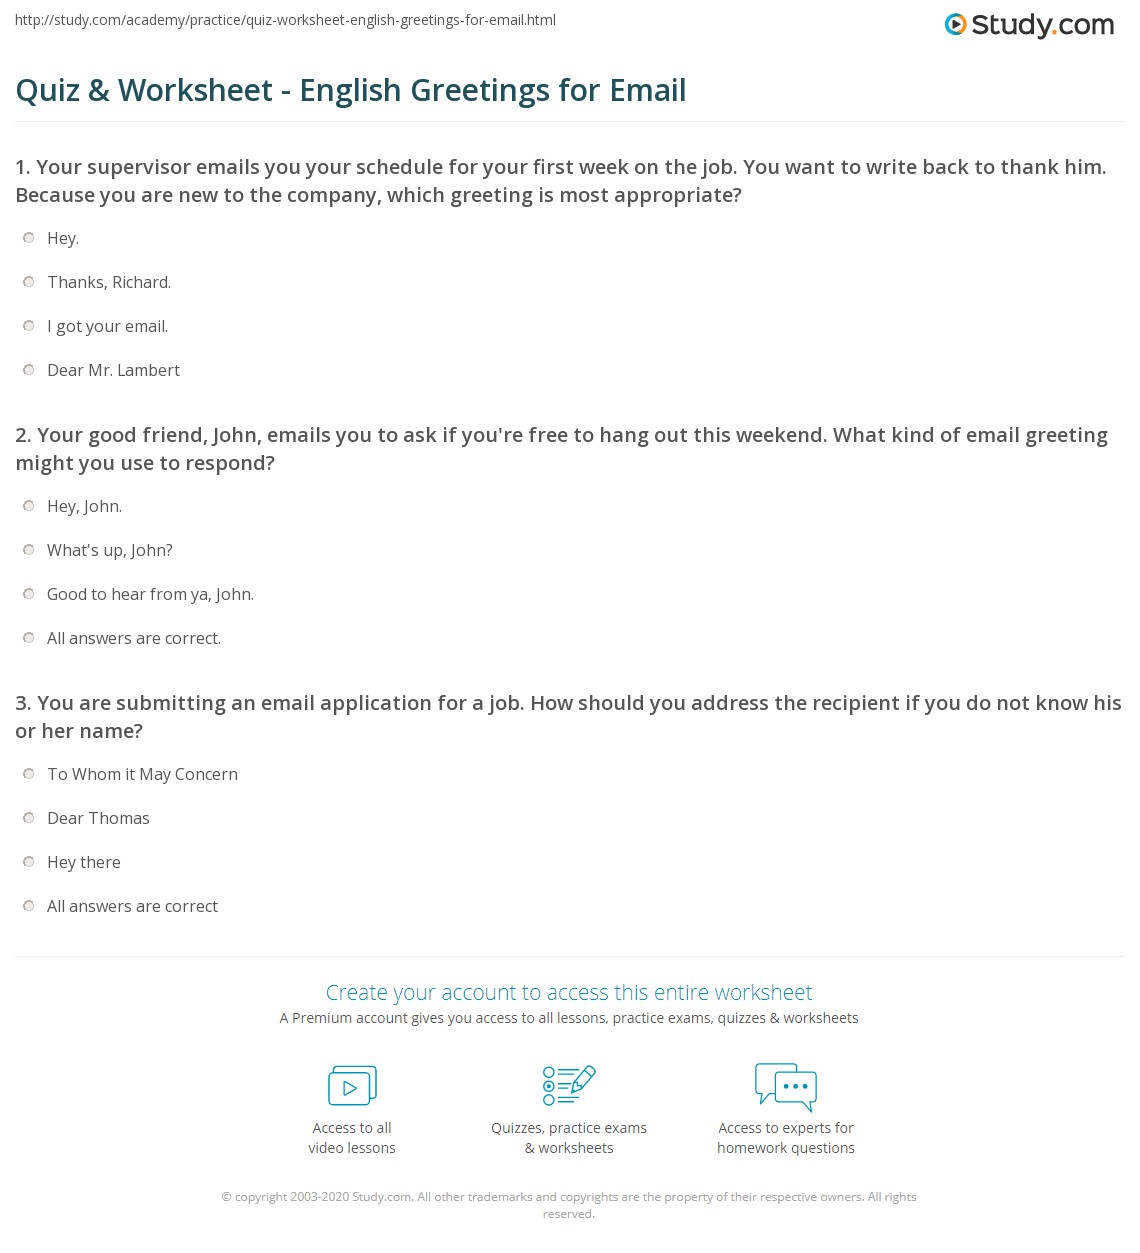 Quiz Worksheet English Greetings For Email Study